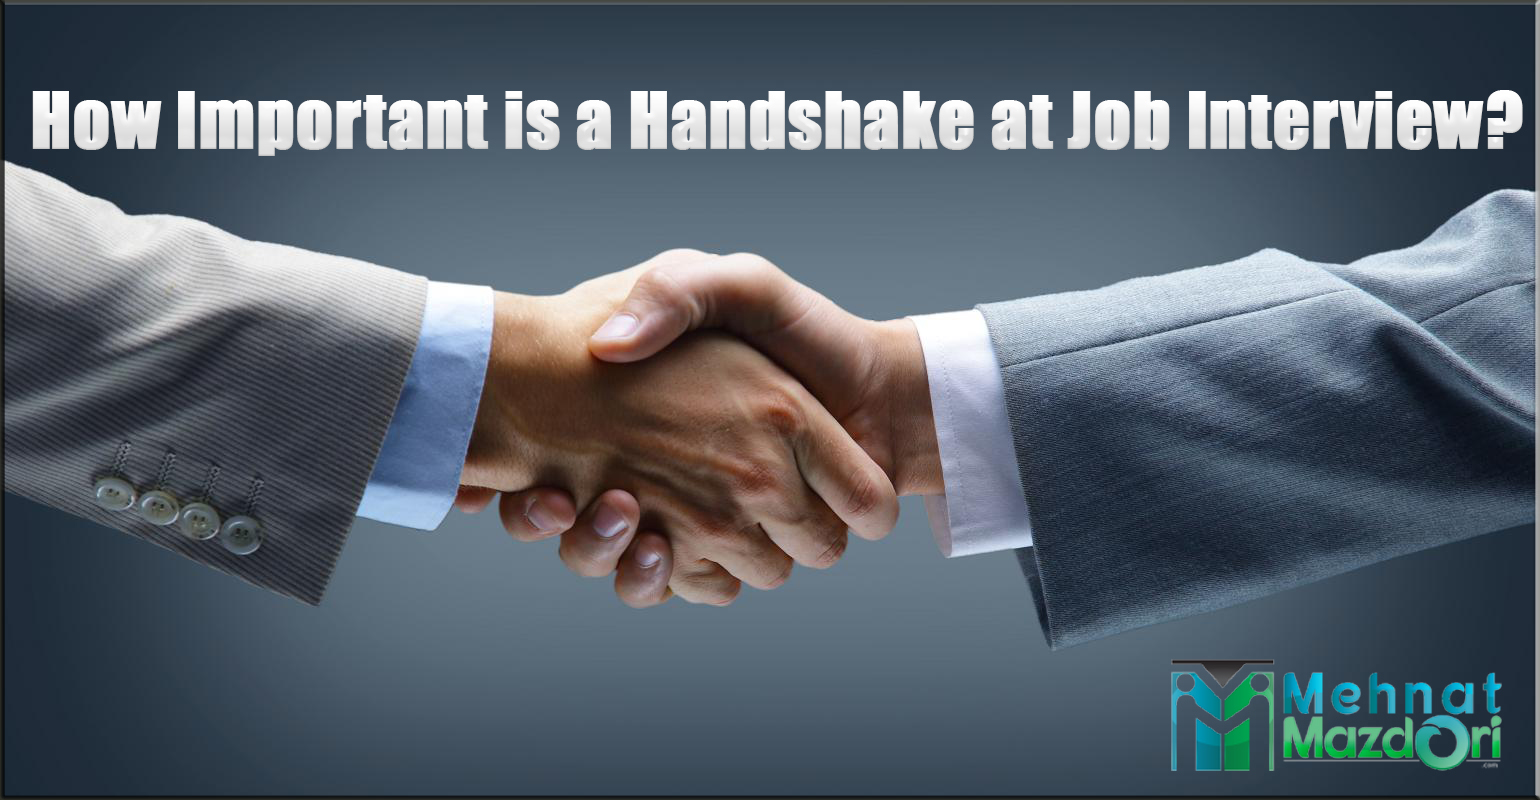 How Important is a Handshake at Job Interview?